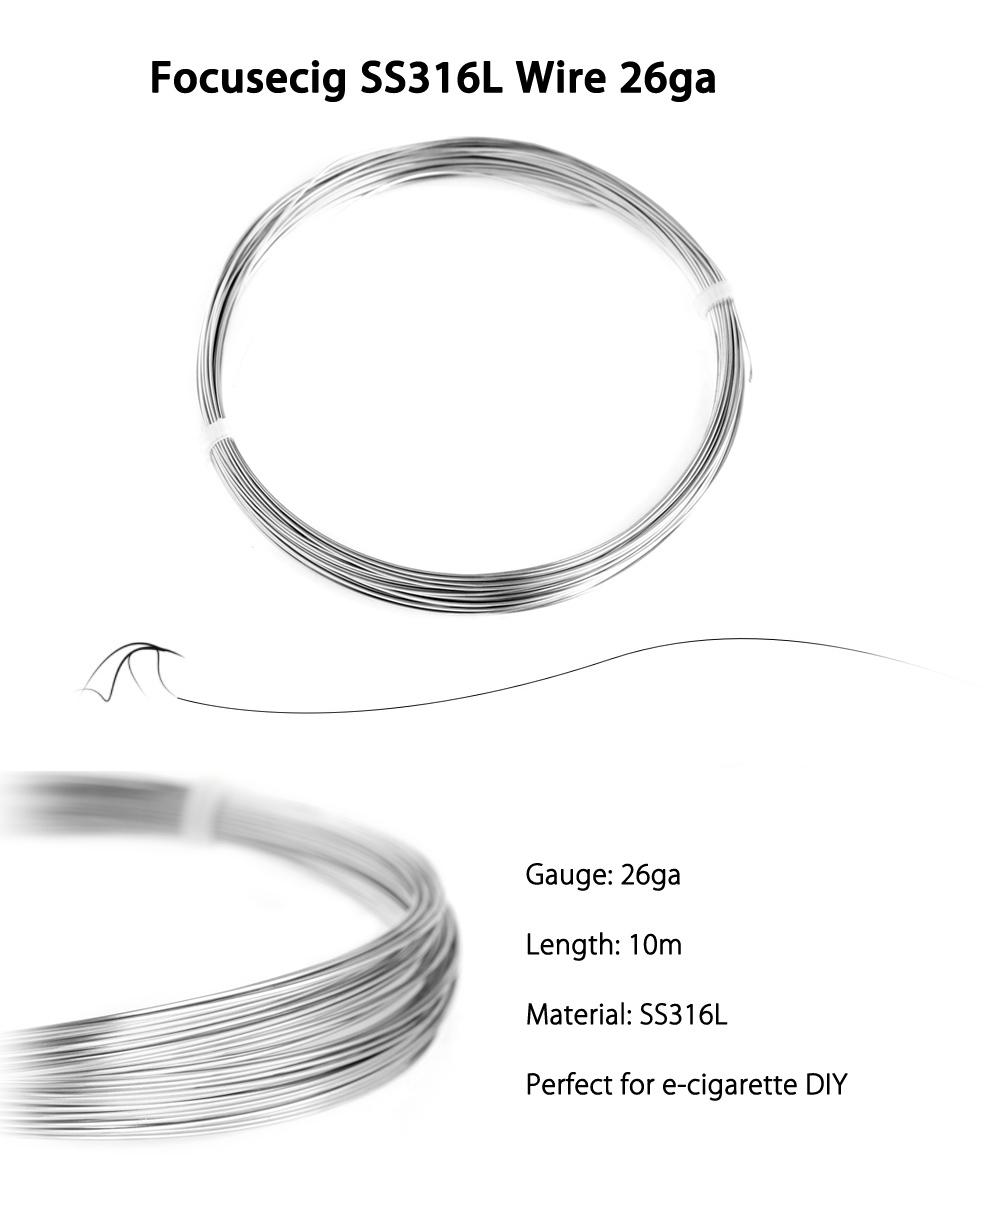 Original Focusecig SS316L Wire / Heating Wire with 26ga